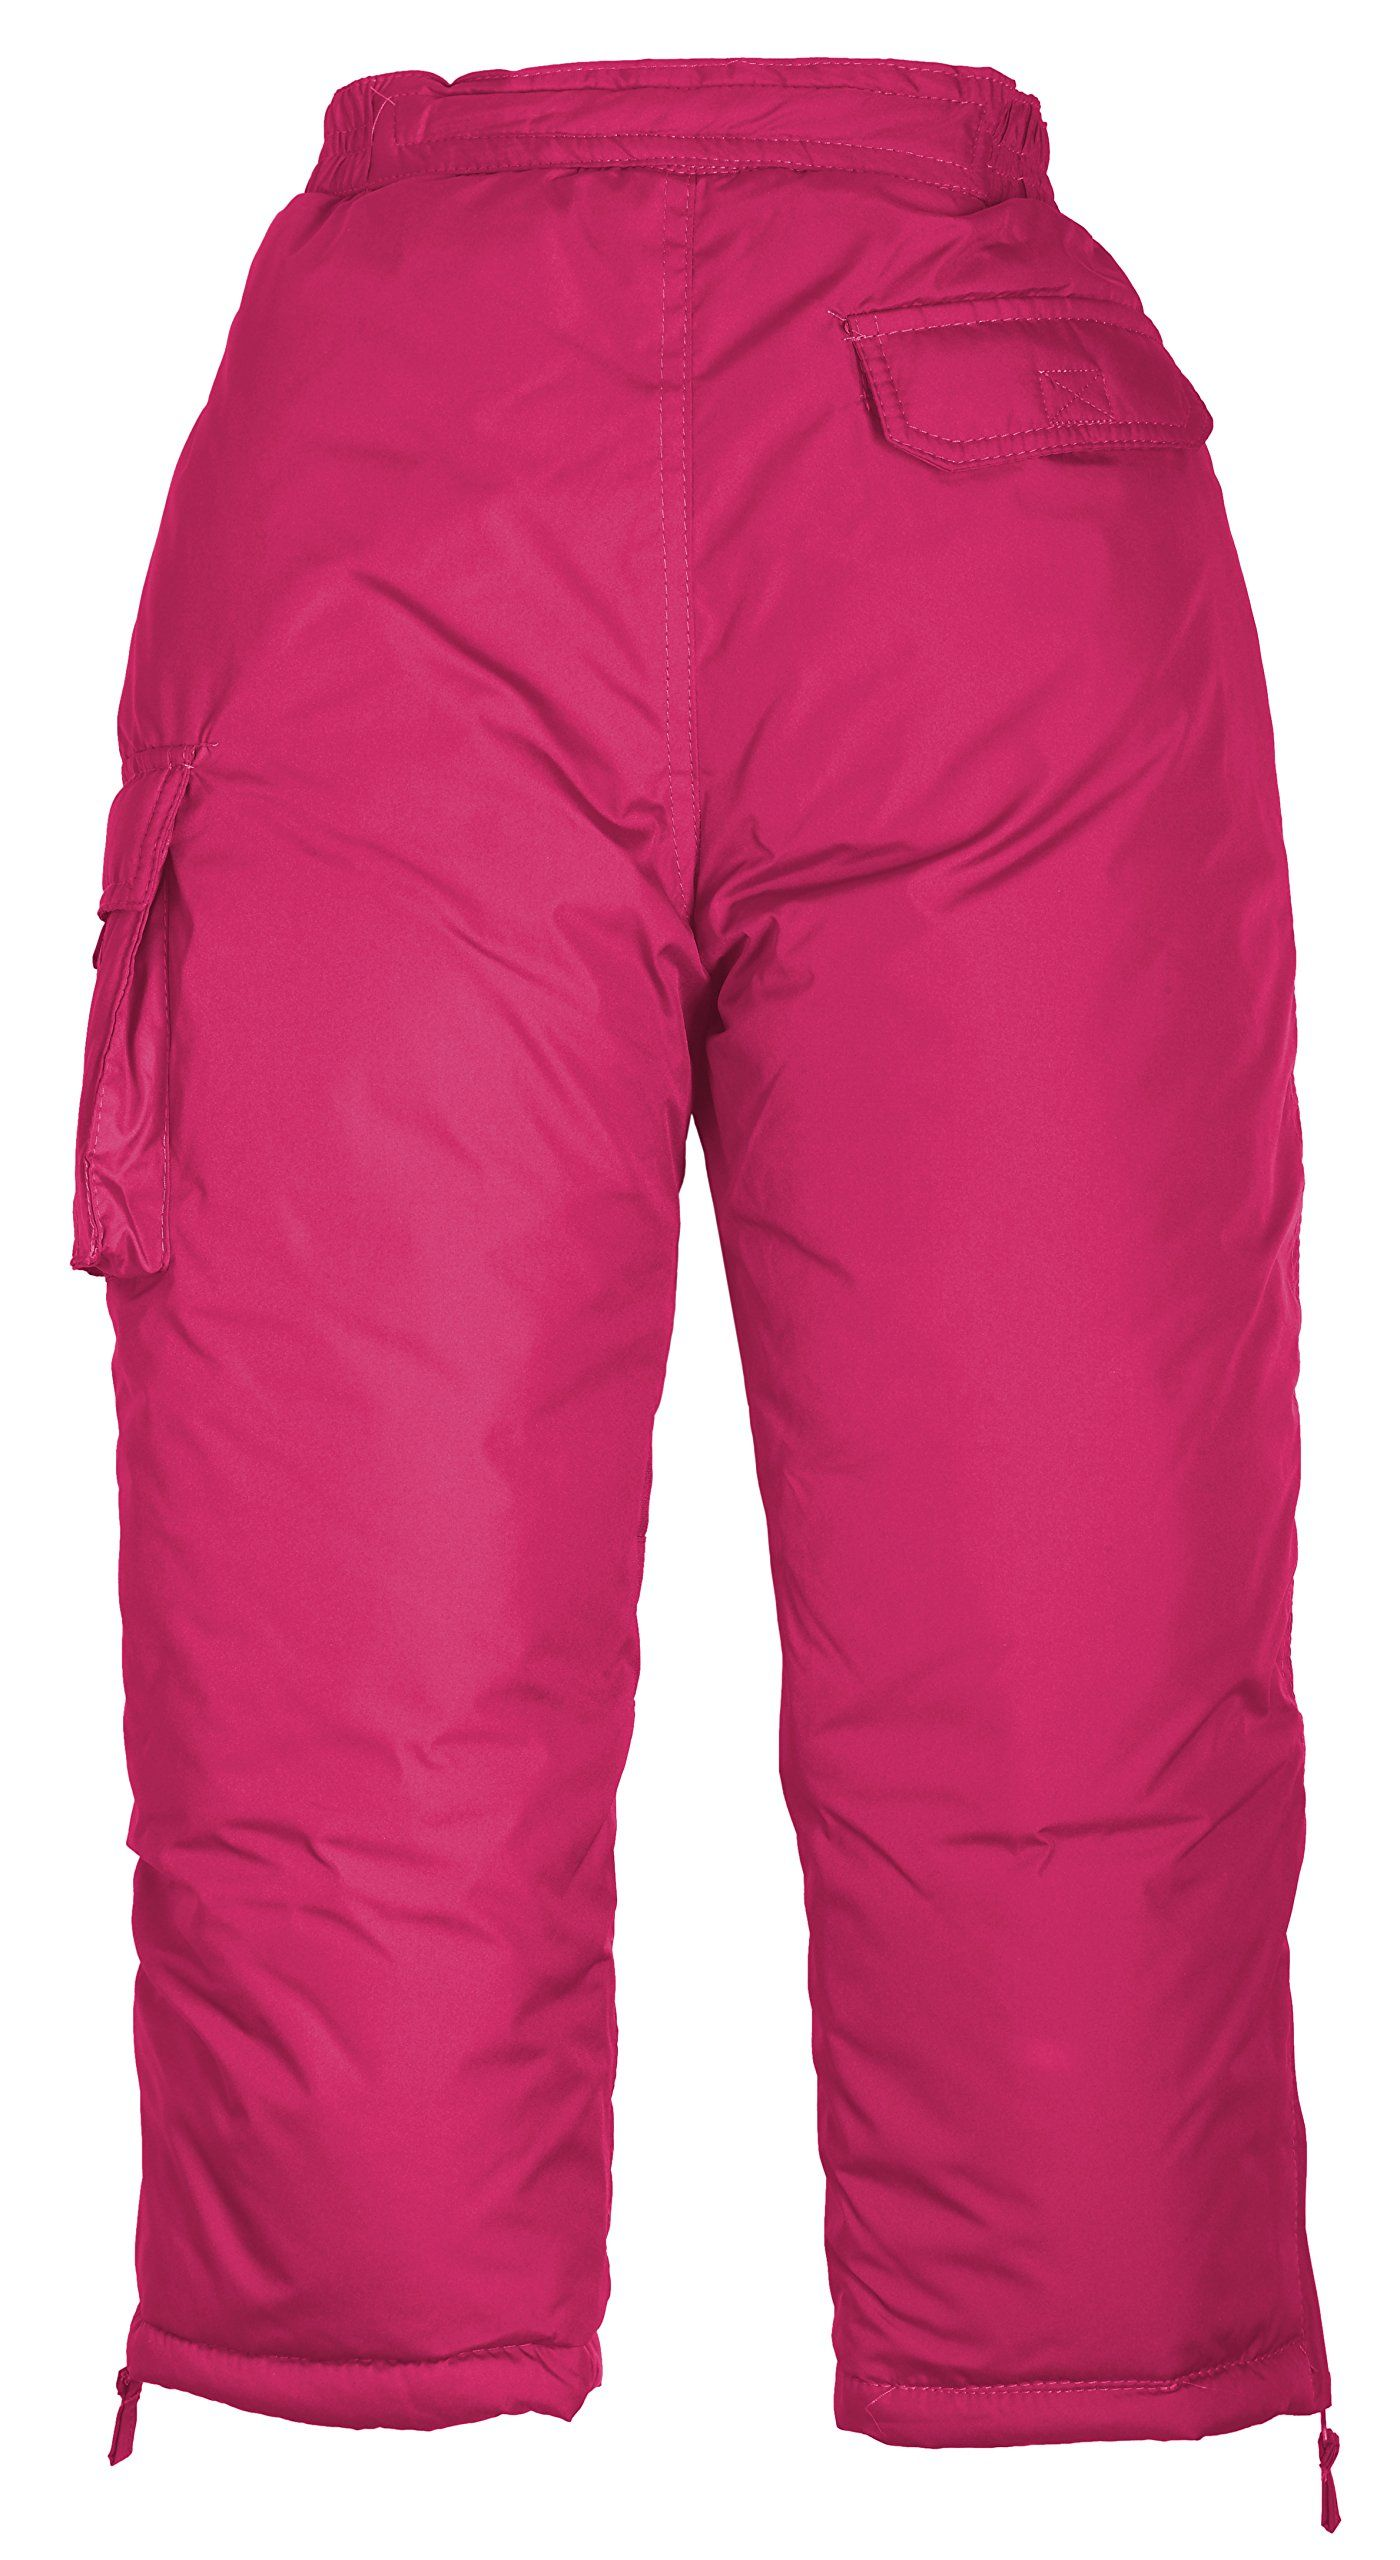 dd947d13d Ixtreme Kids Water Resistant Insulated Snowboard Snowpants Snow Bib ...